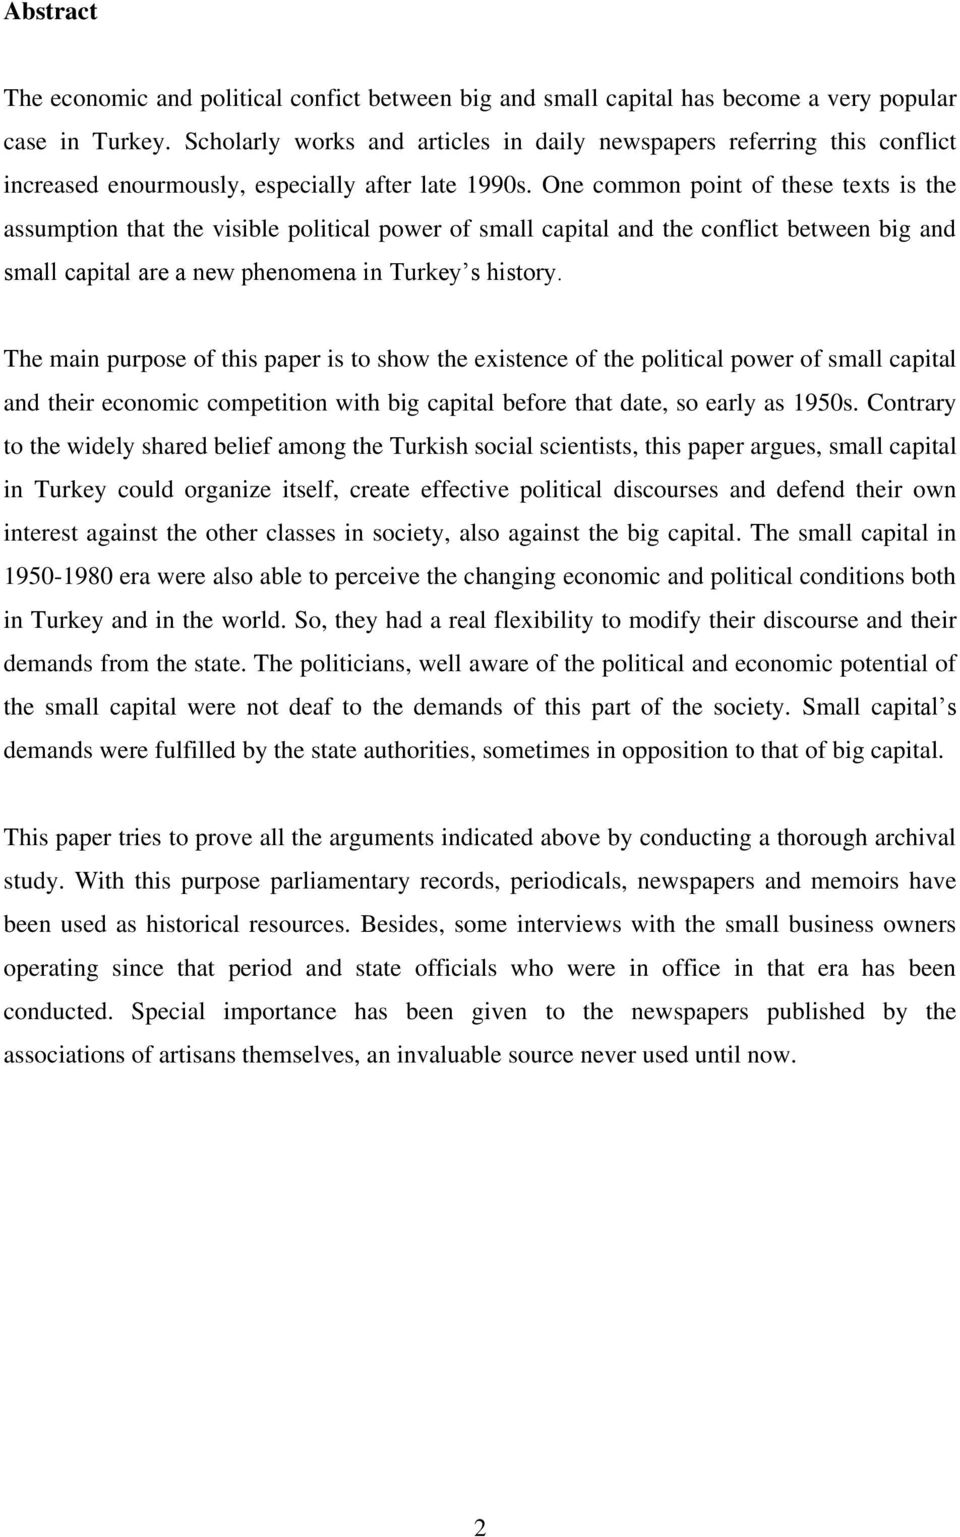 One common point of these texts is the assumption that the visible political power of small capital and the conflict between big and small capital are a new phenomena in Turkey s history.